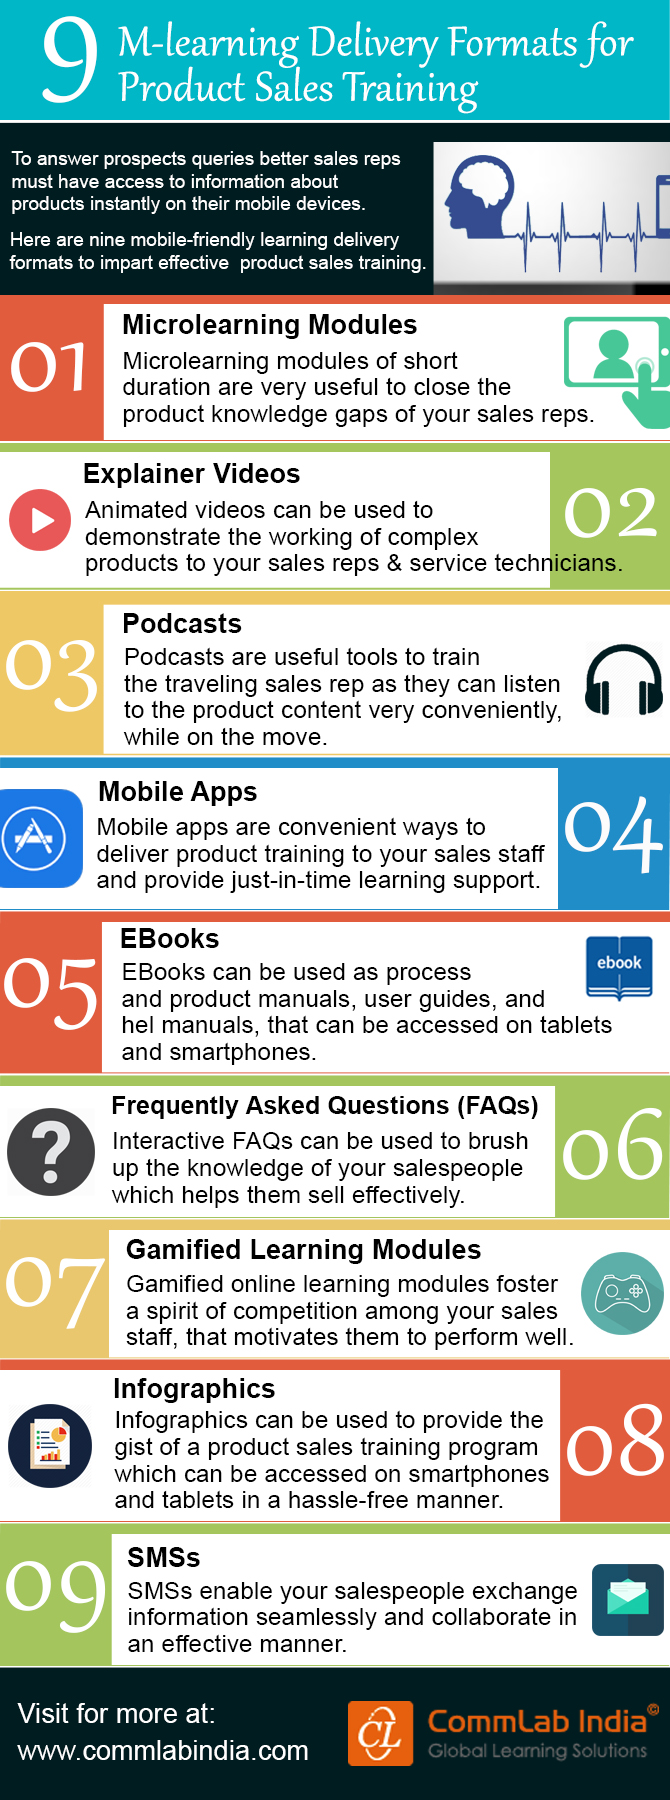 9 M-Learning Delivery Formats For Product Sales Training [Infographic]